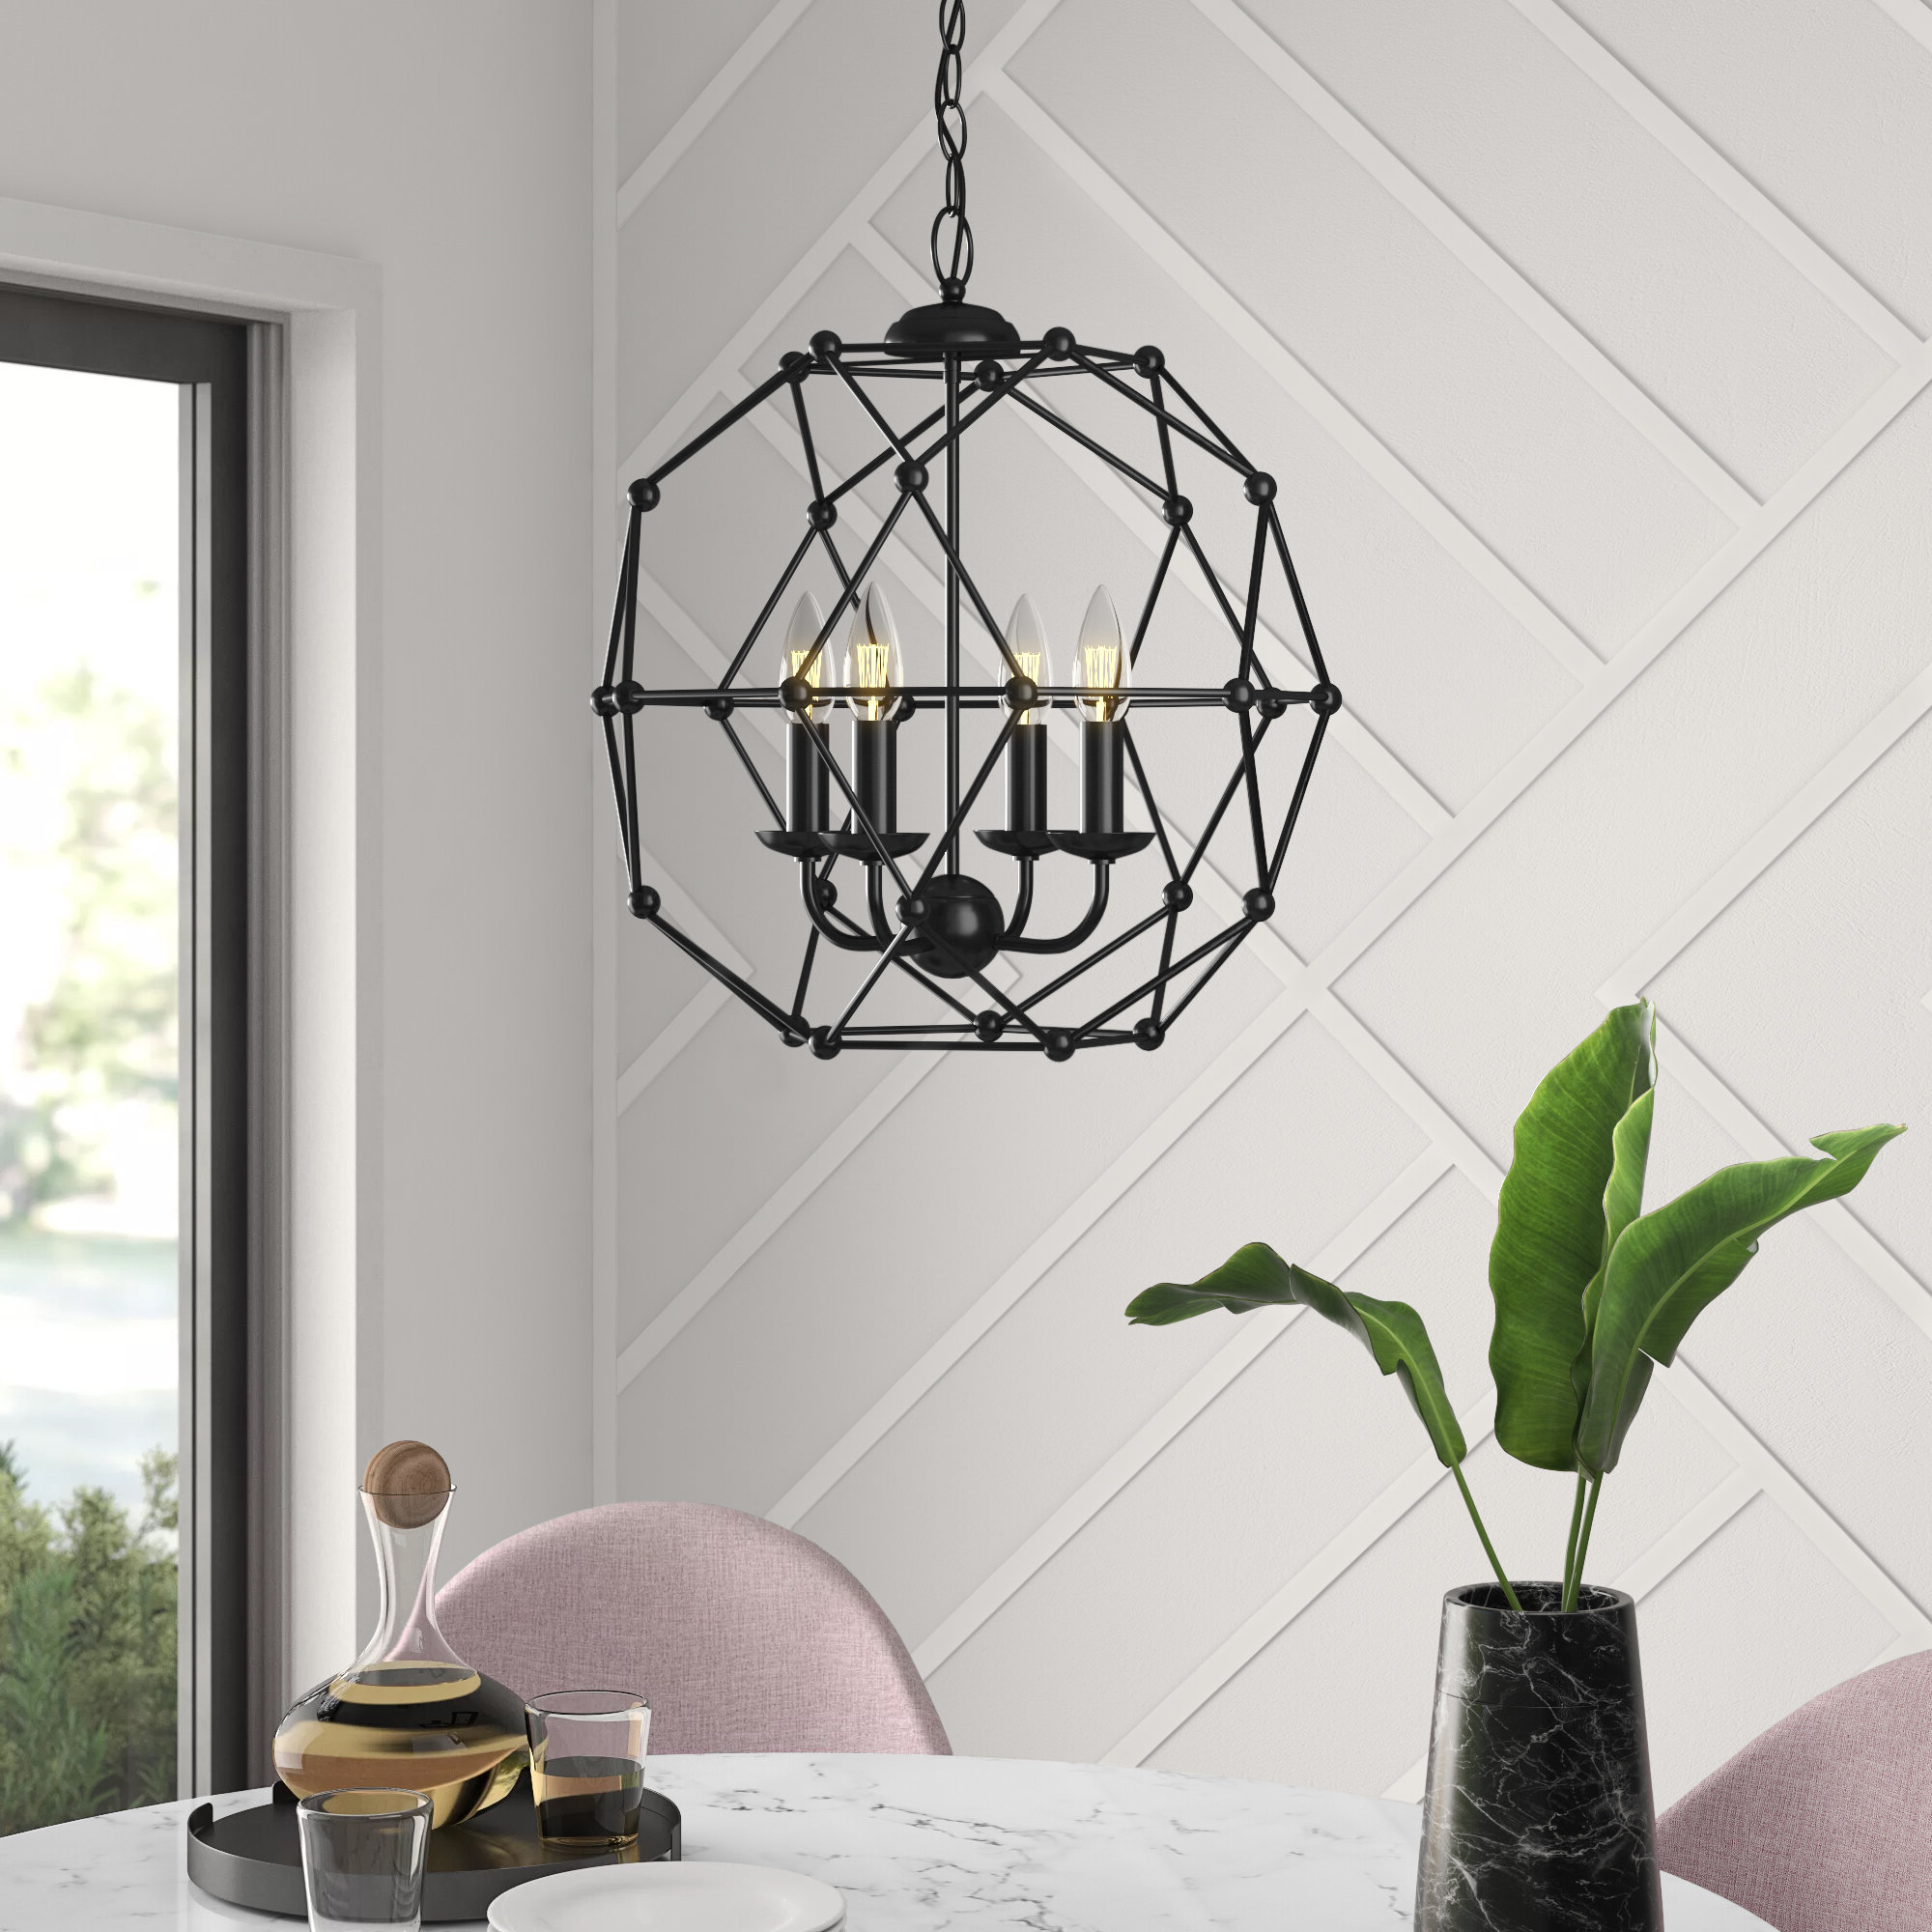 Most Recently Released Cavanagh 4 Light Geometric Chandelier Pertaining To Cavanagh 4 Light Geometric Chandeliers (View 14 of 25)